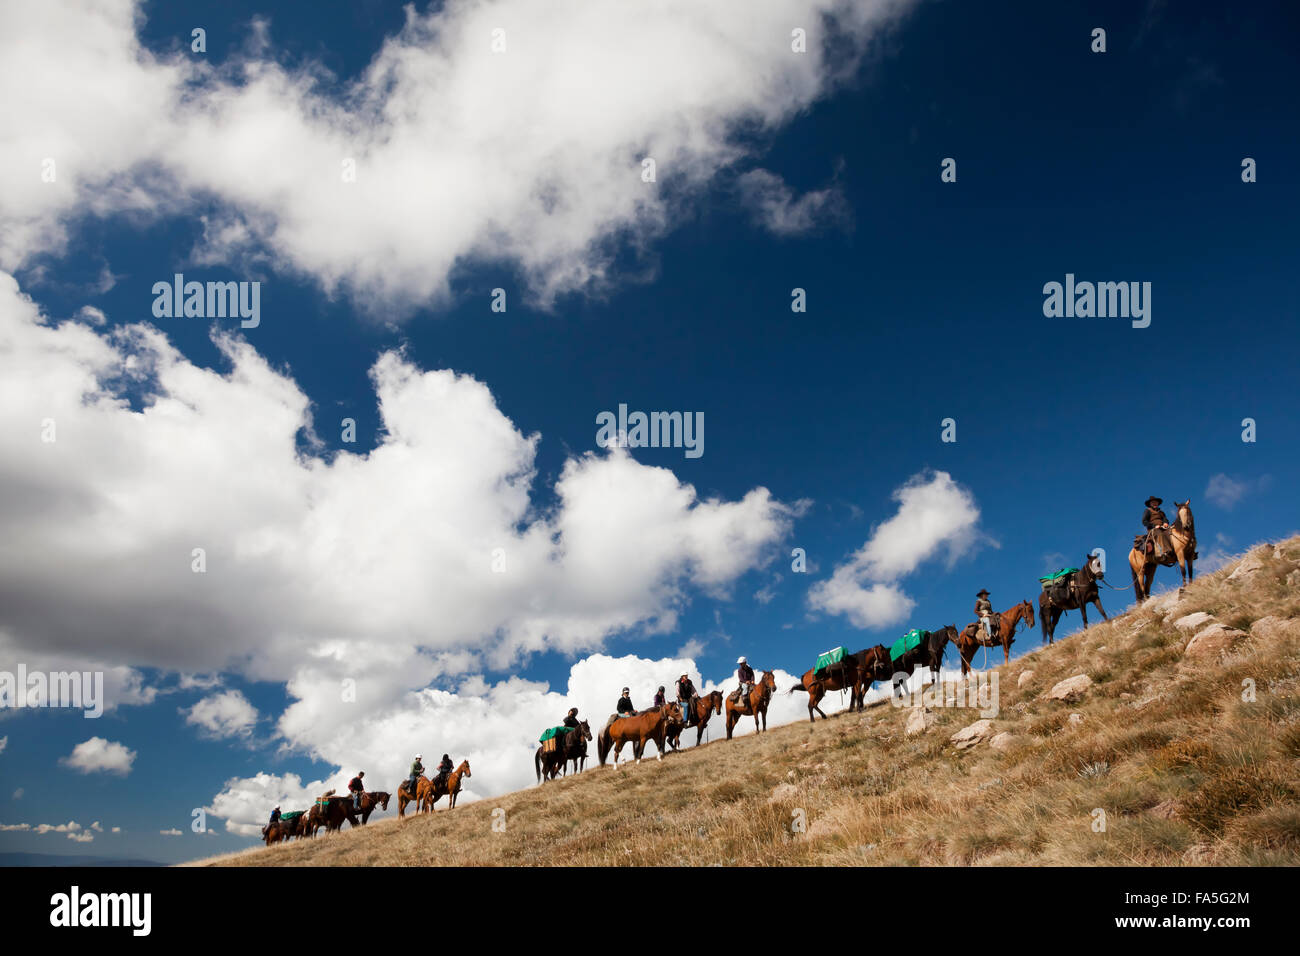 A train of riders and packhorses ascend Timms Spur to the Bogong High plains during a Bogong Horseback Adventure. - Stock Image